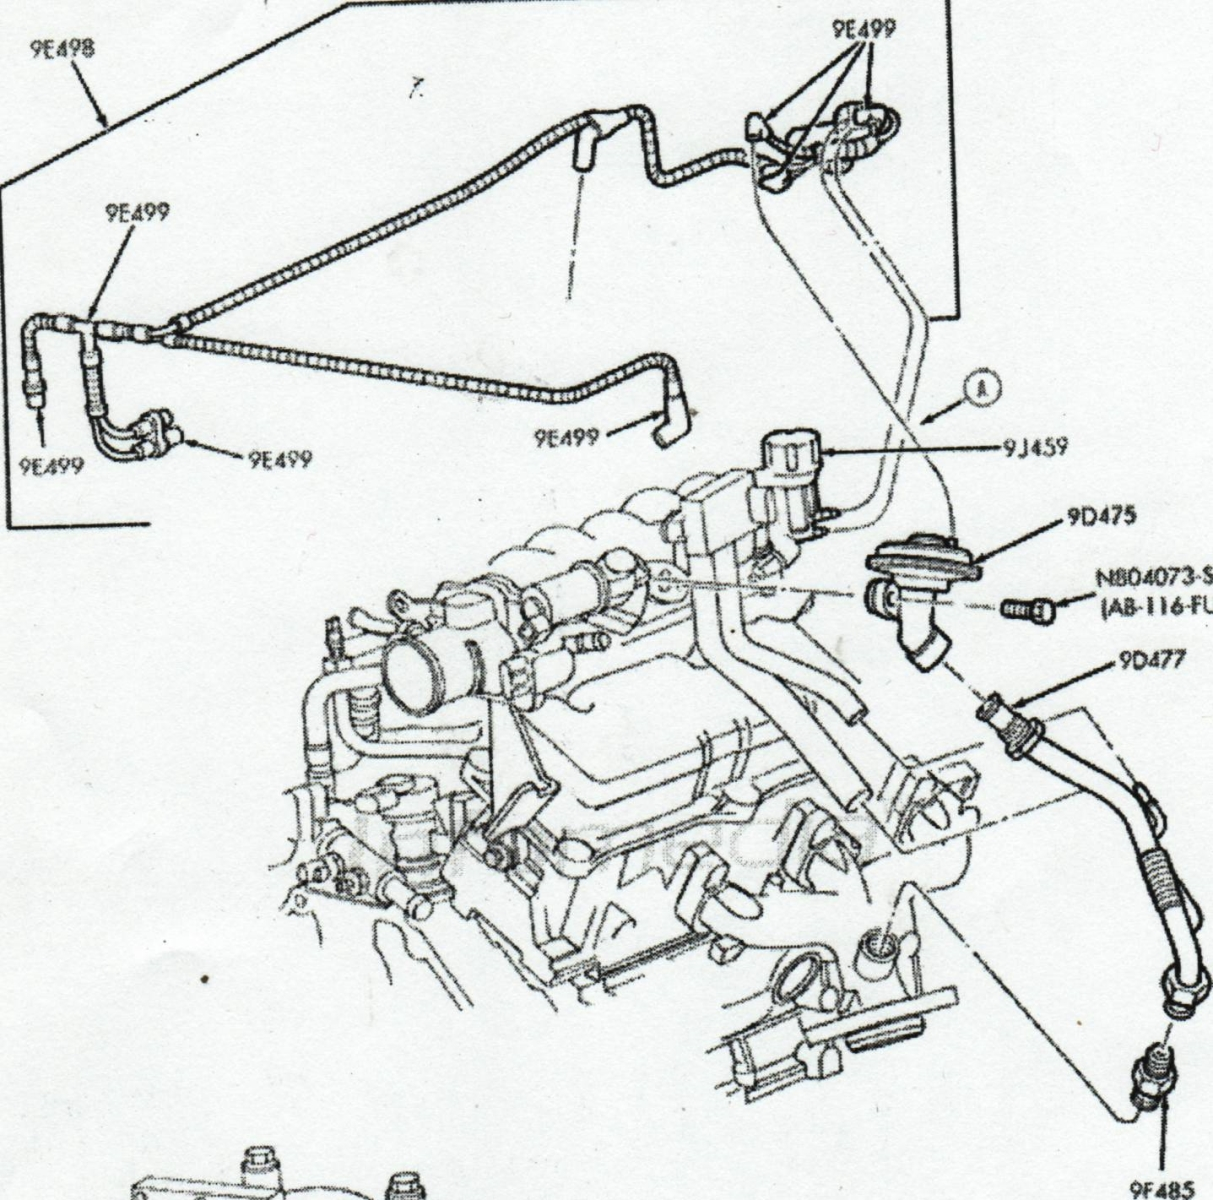 03 taurus vacuum diagram best wiring library 2003 Ford Ranger Heater Hose Replacement 2003 taurus sel fuel tank question page 2 taurus car 1999 ford taurus sensor wire diagram